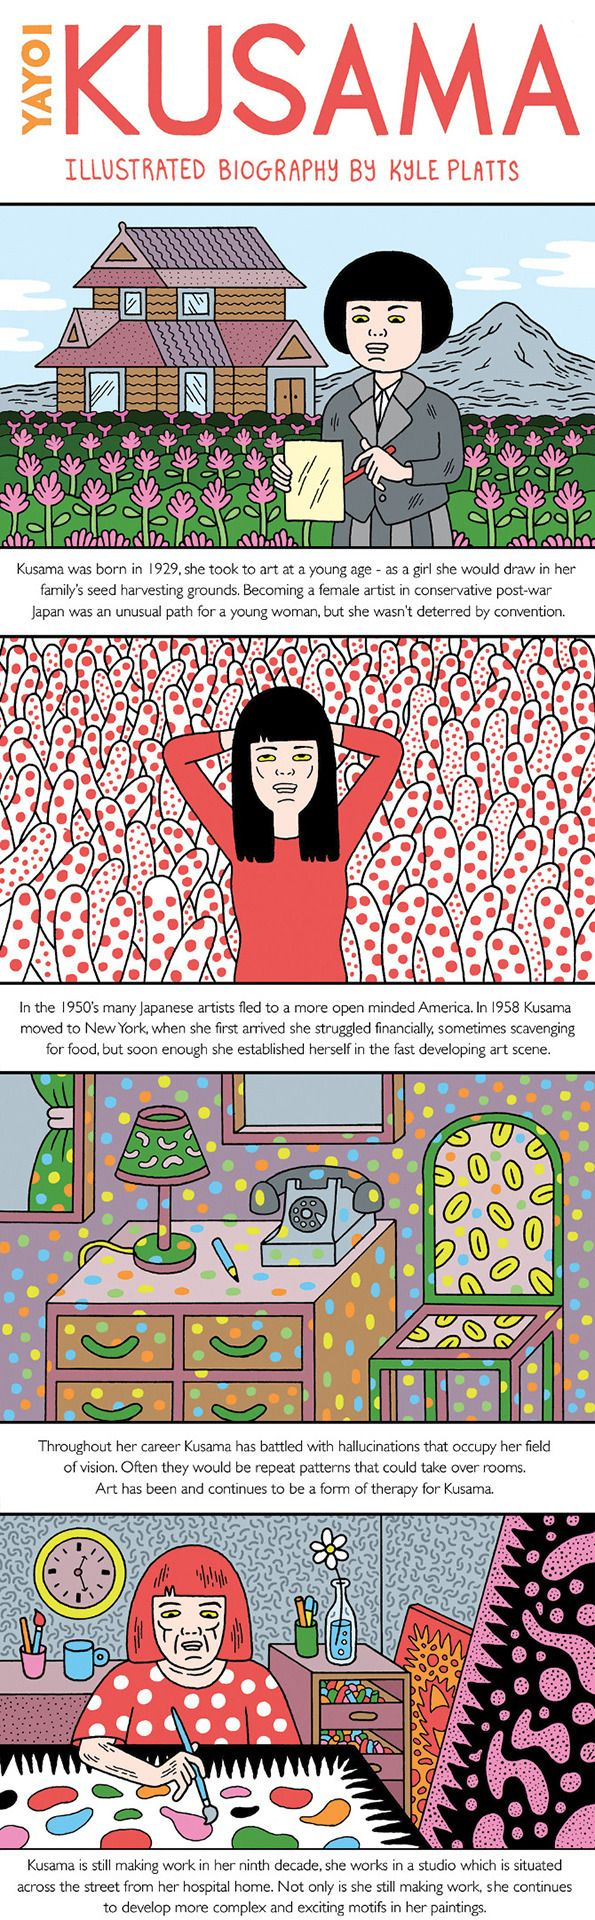 It's Nice That : Illustration: Kyle Platts' portraits of artists and designers for Computer Arts